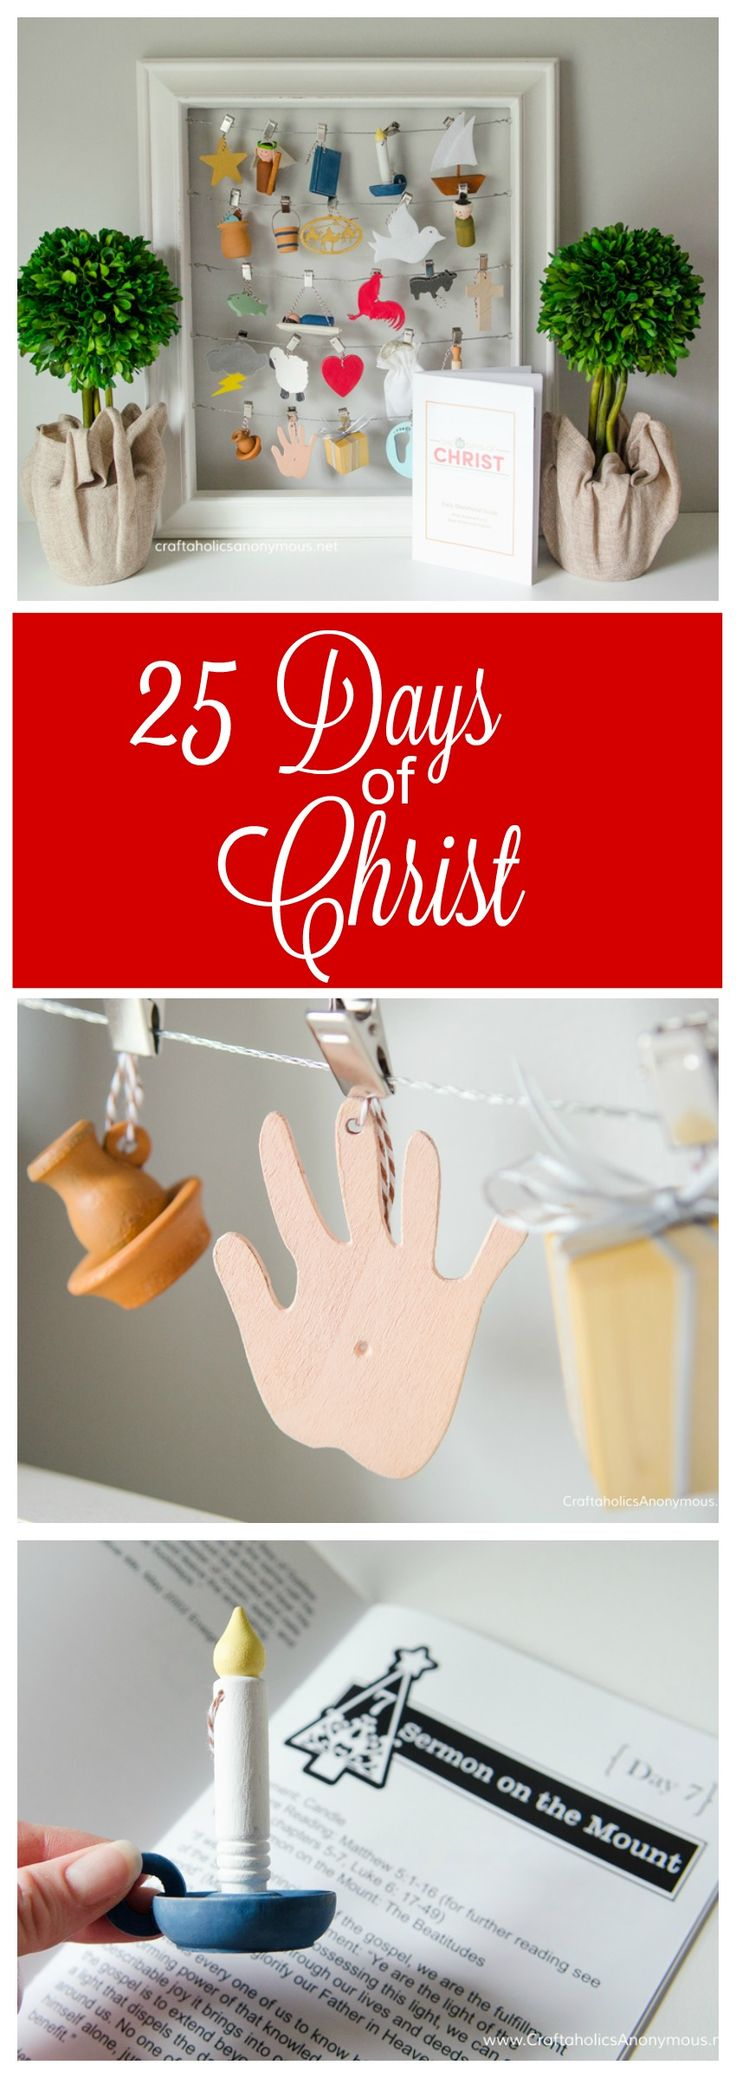 25 Days of Christ || Help your family keep Christ at the center of Christmas with this new family tradition! Start this in your home this holiday season.